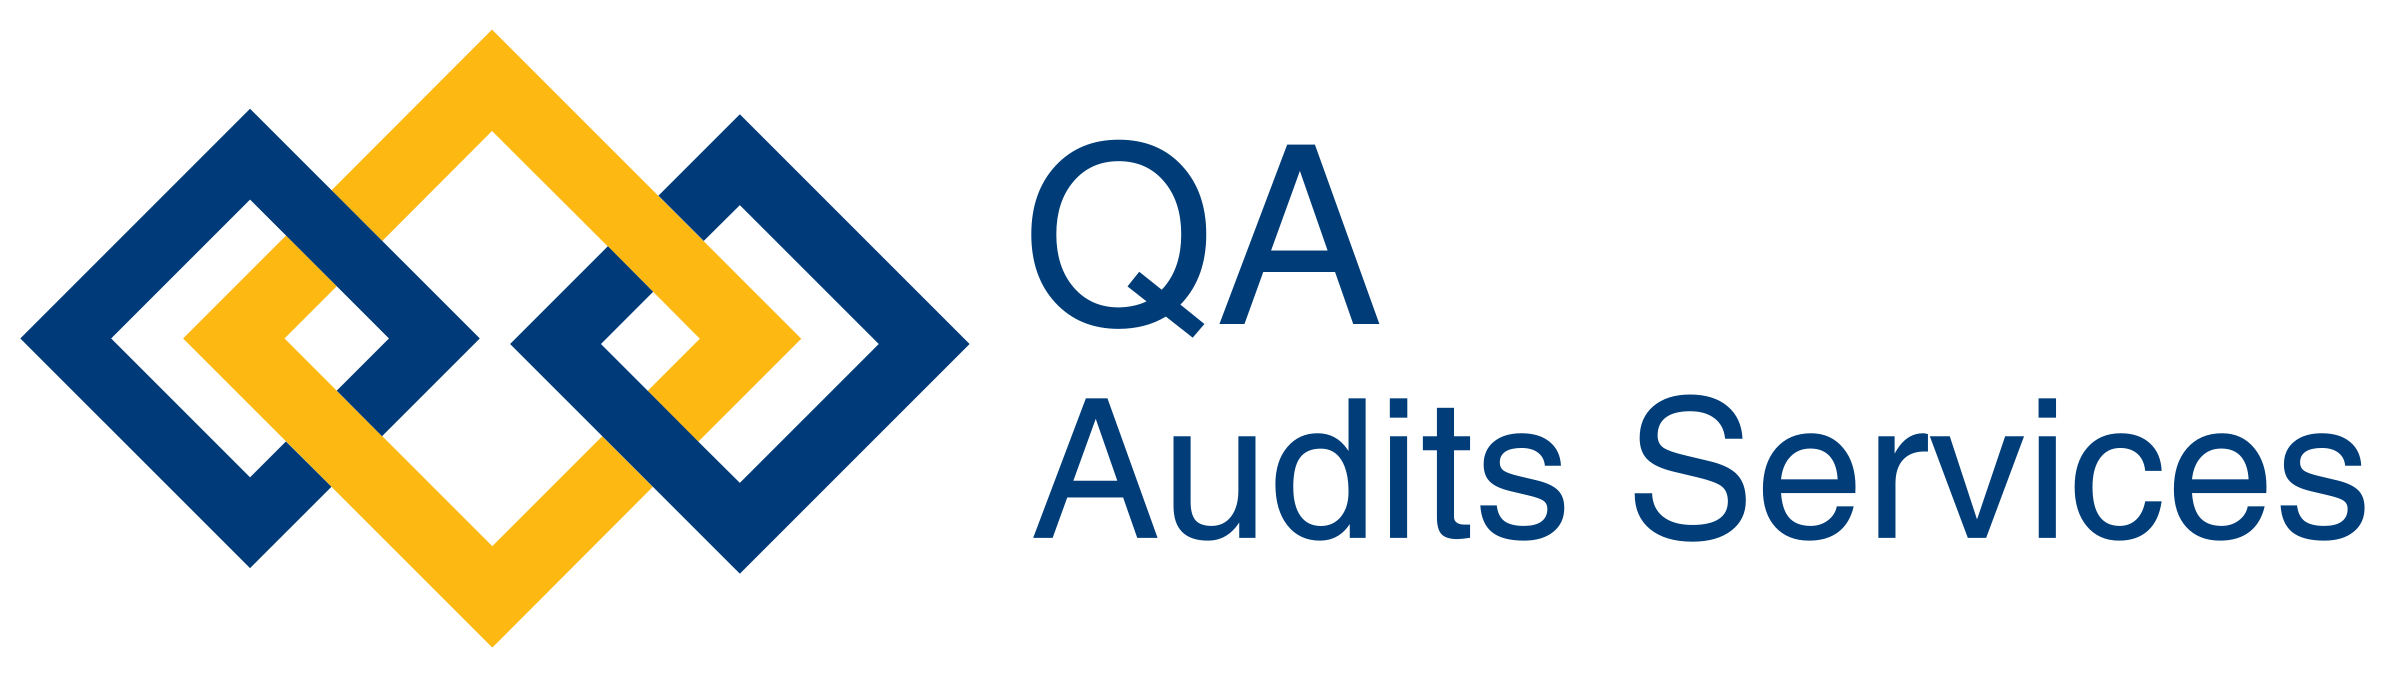 QA Audits Servives